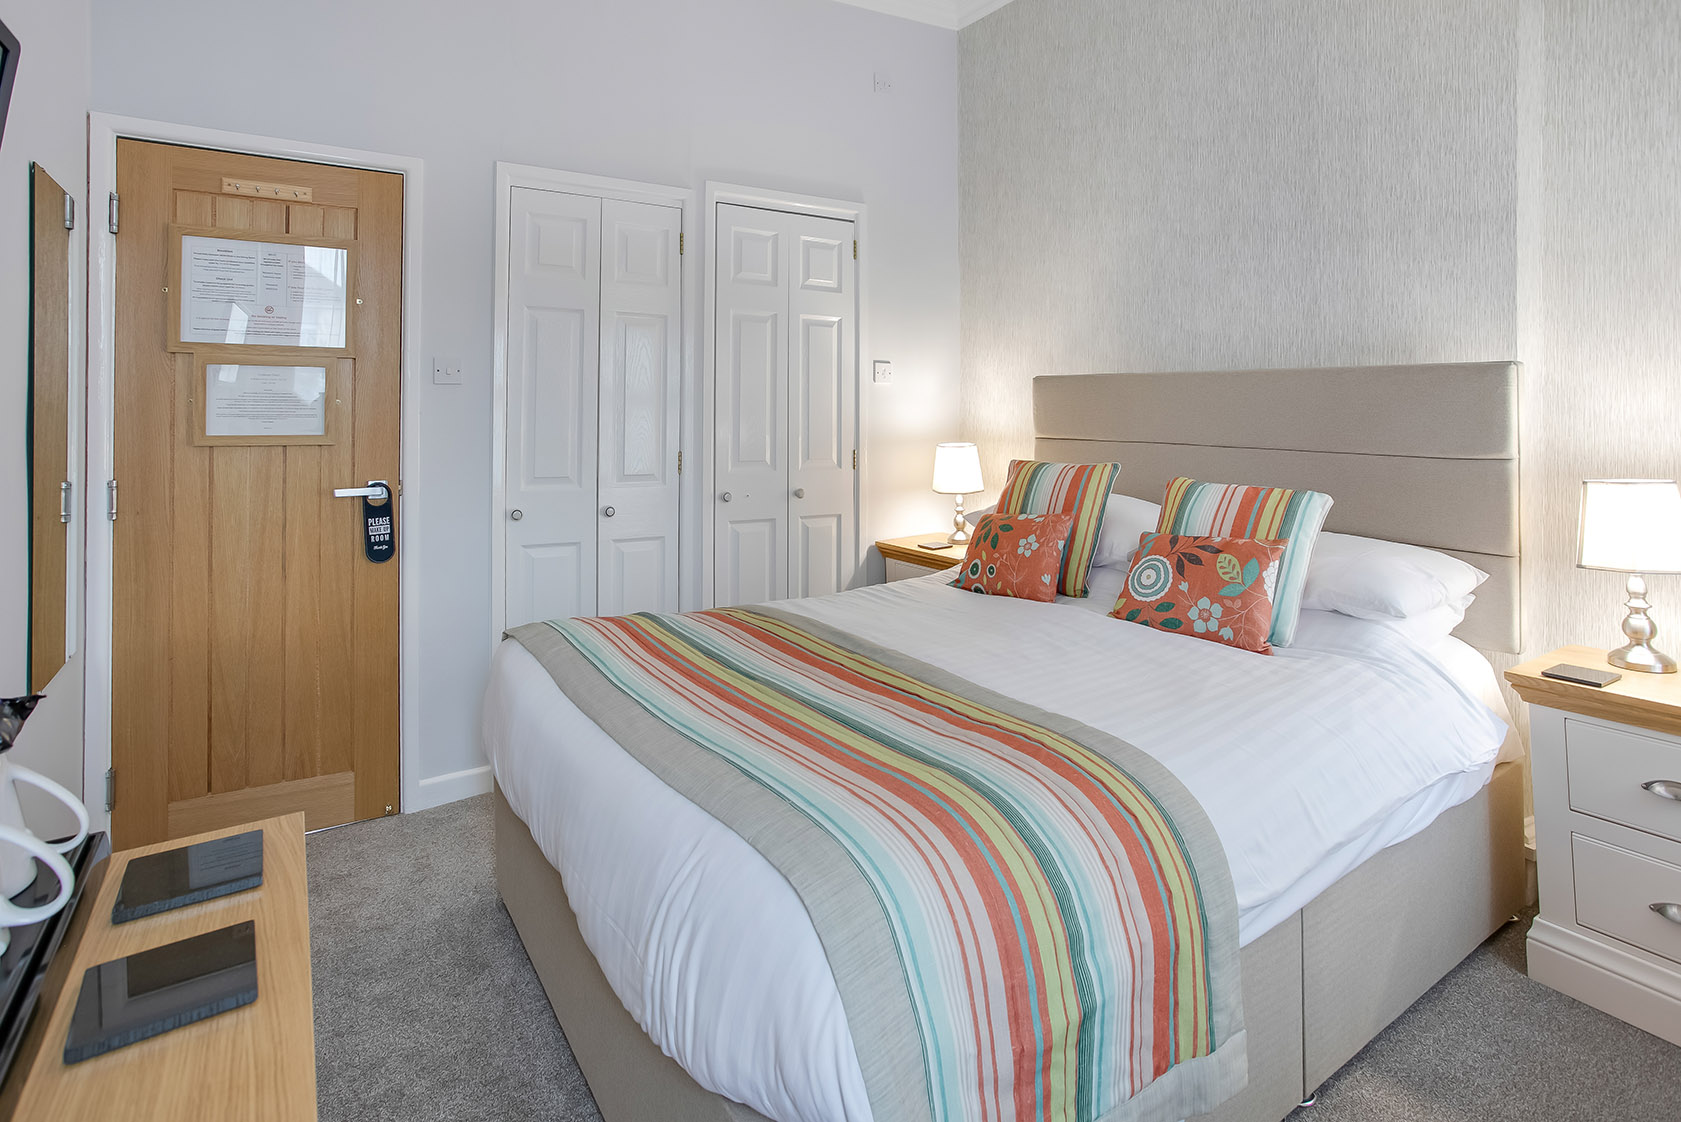 Trelawney Hotel in Torquay - Luxury Bed and Breakfast